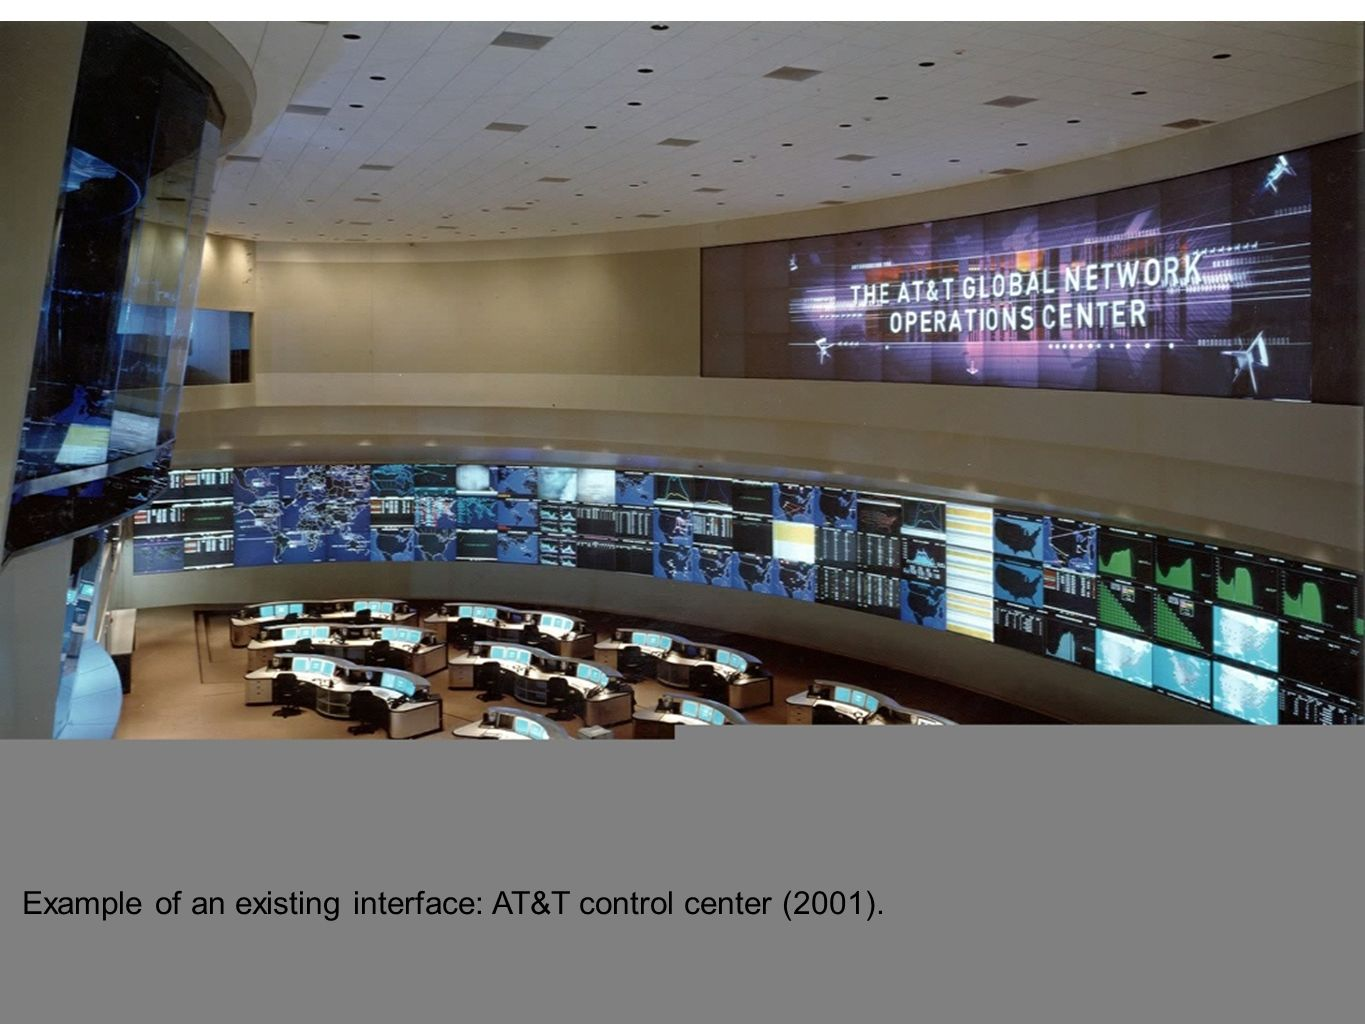 Example of an existing interface: AT&T control center (2001).